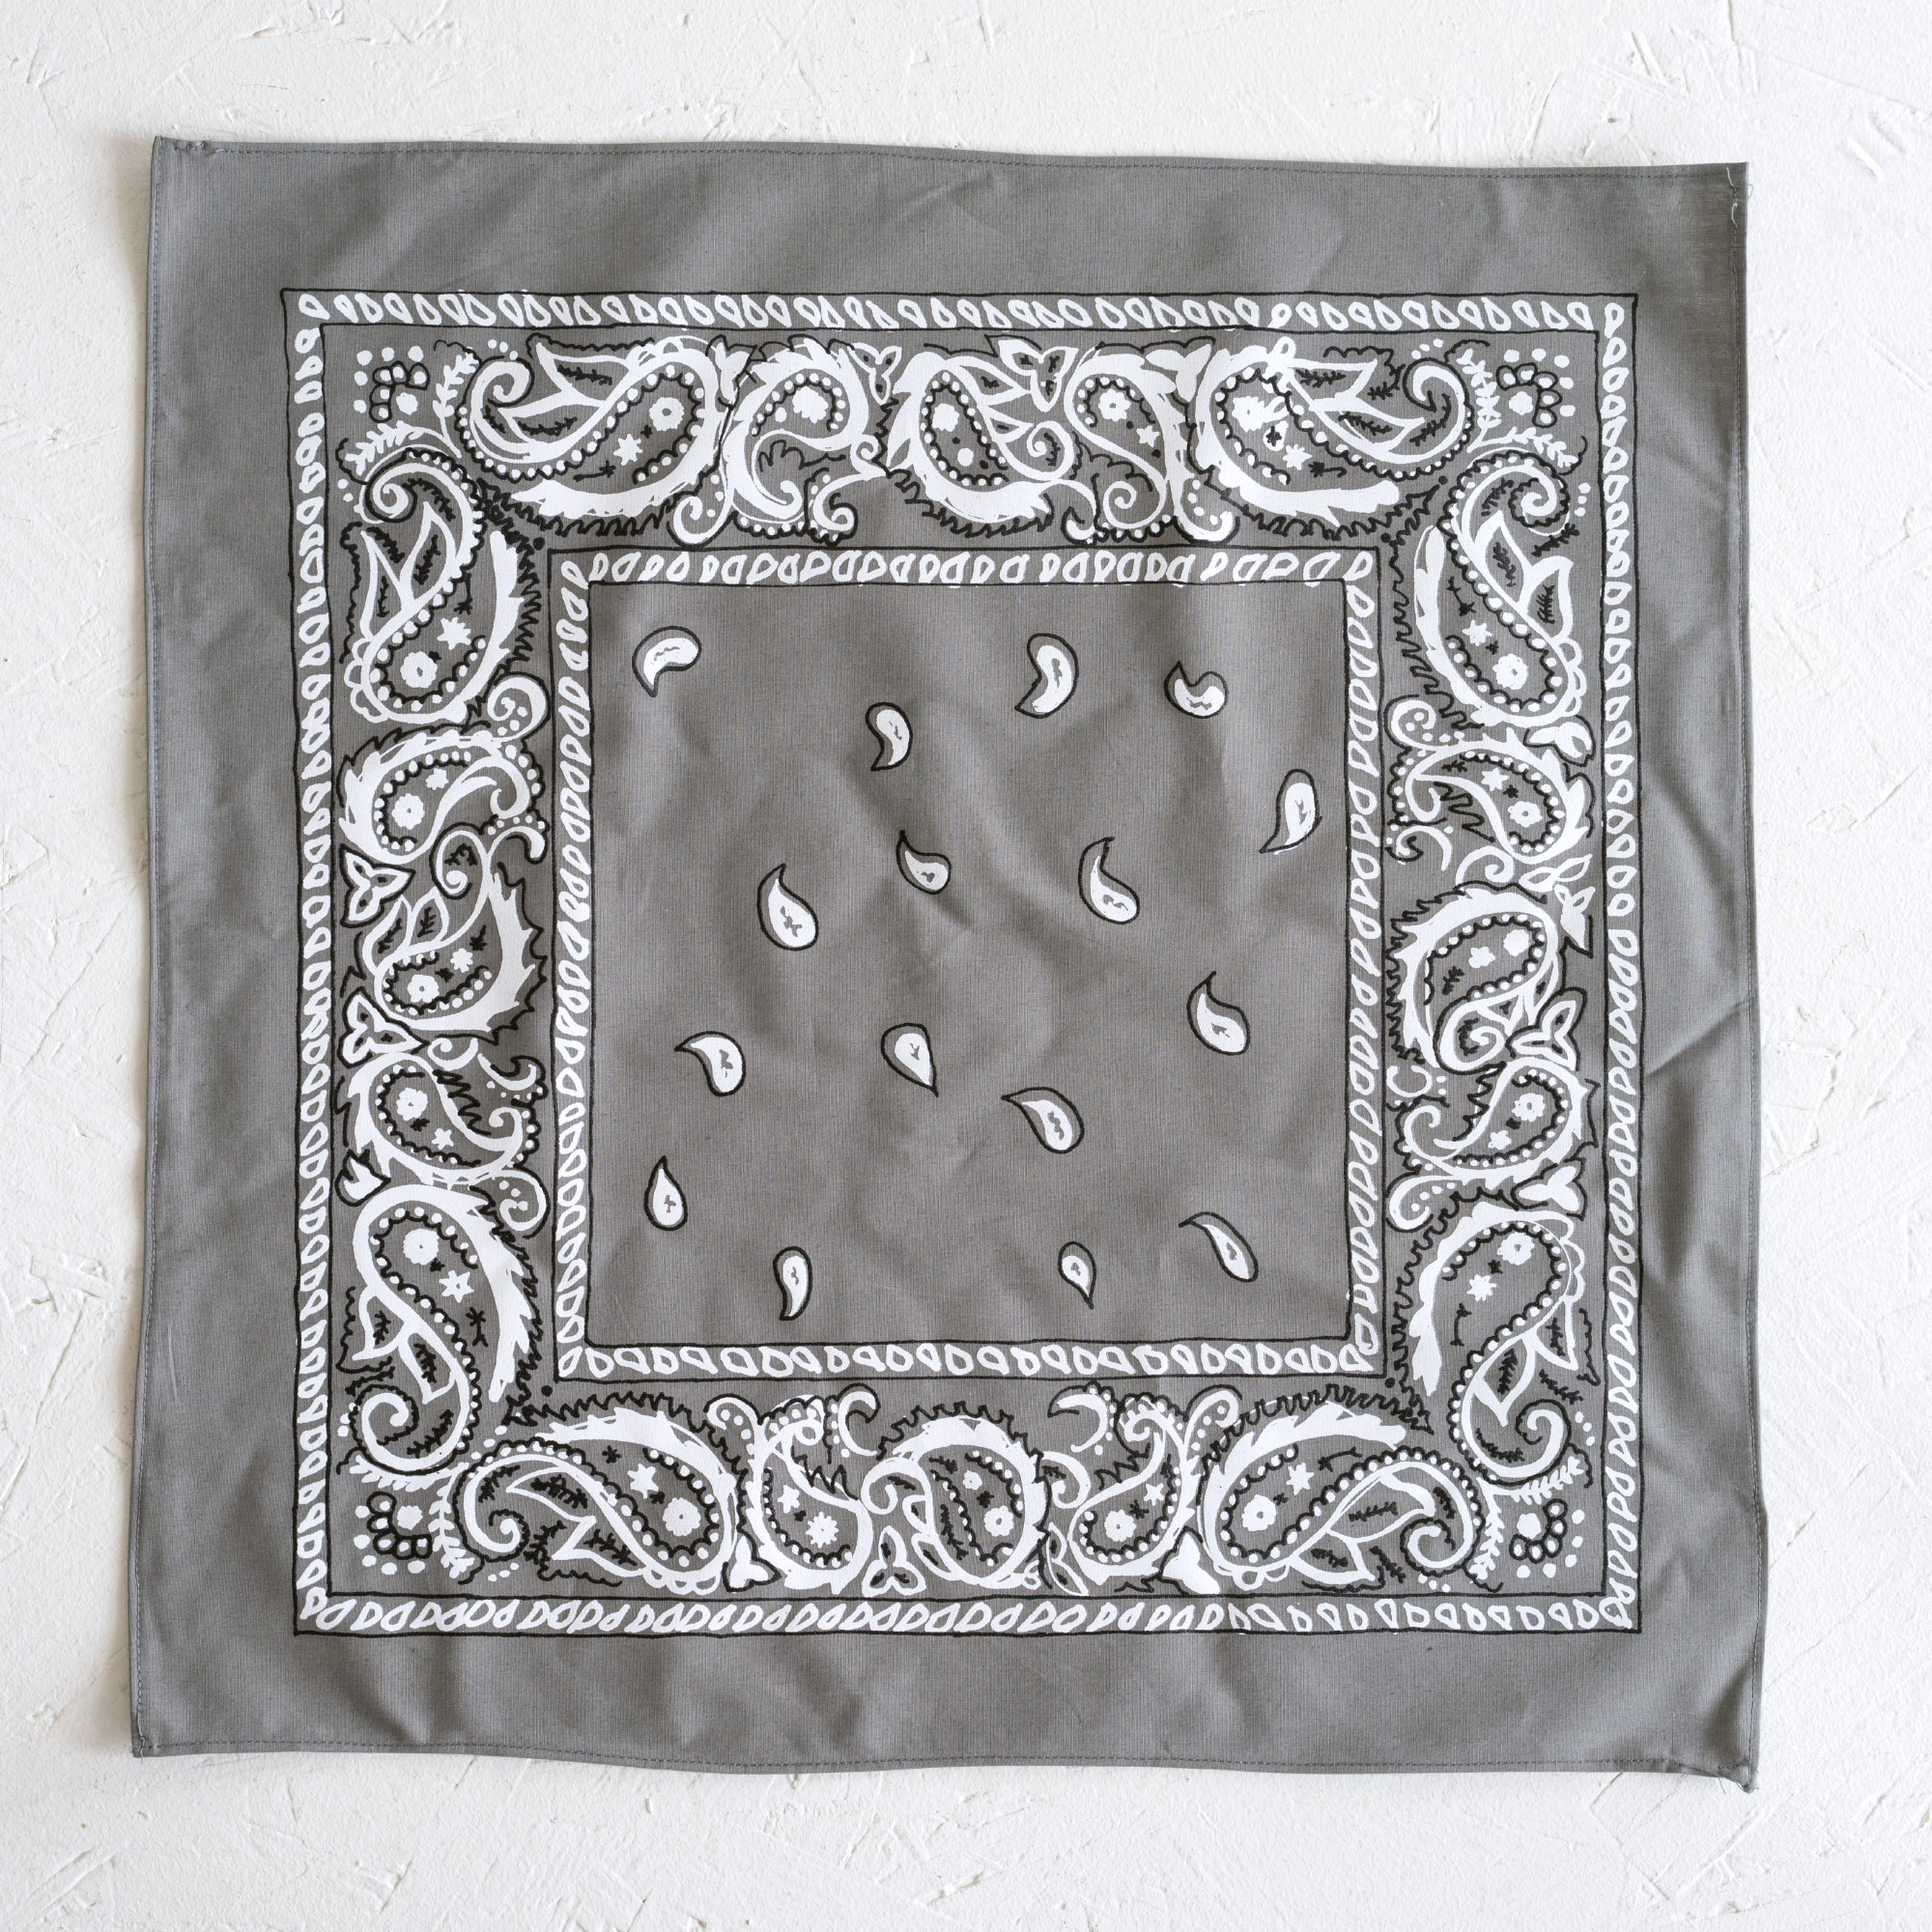 Nancy Davidson, *Hanky Code* (Grey), 2016, Two color silkscreen on hand cut & sewn cotton, 17 x 17 inches (43.18 x 43.18 cm)